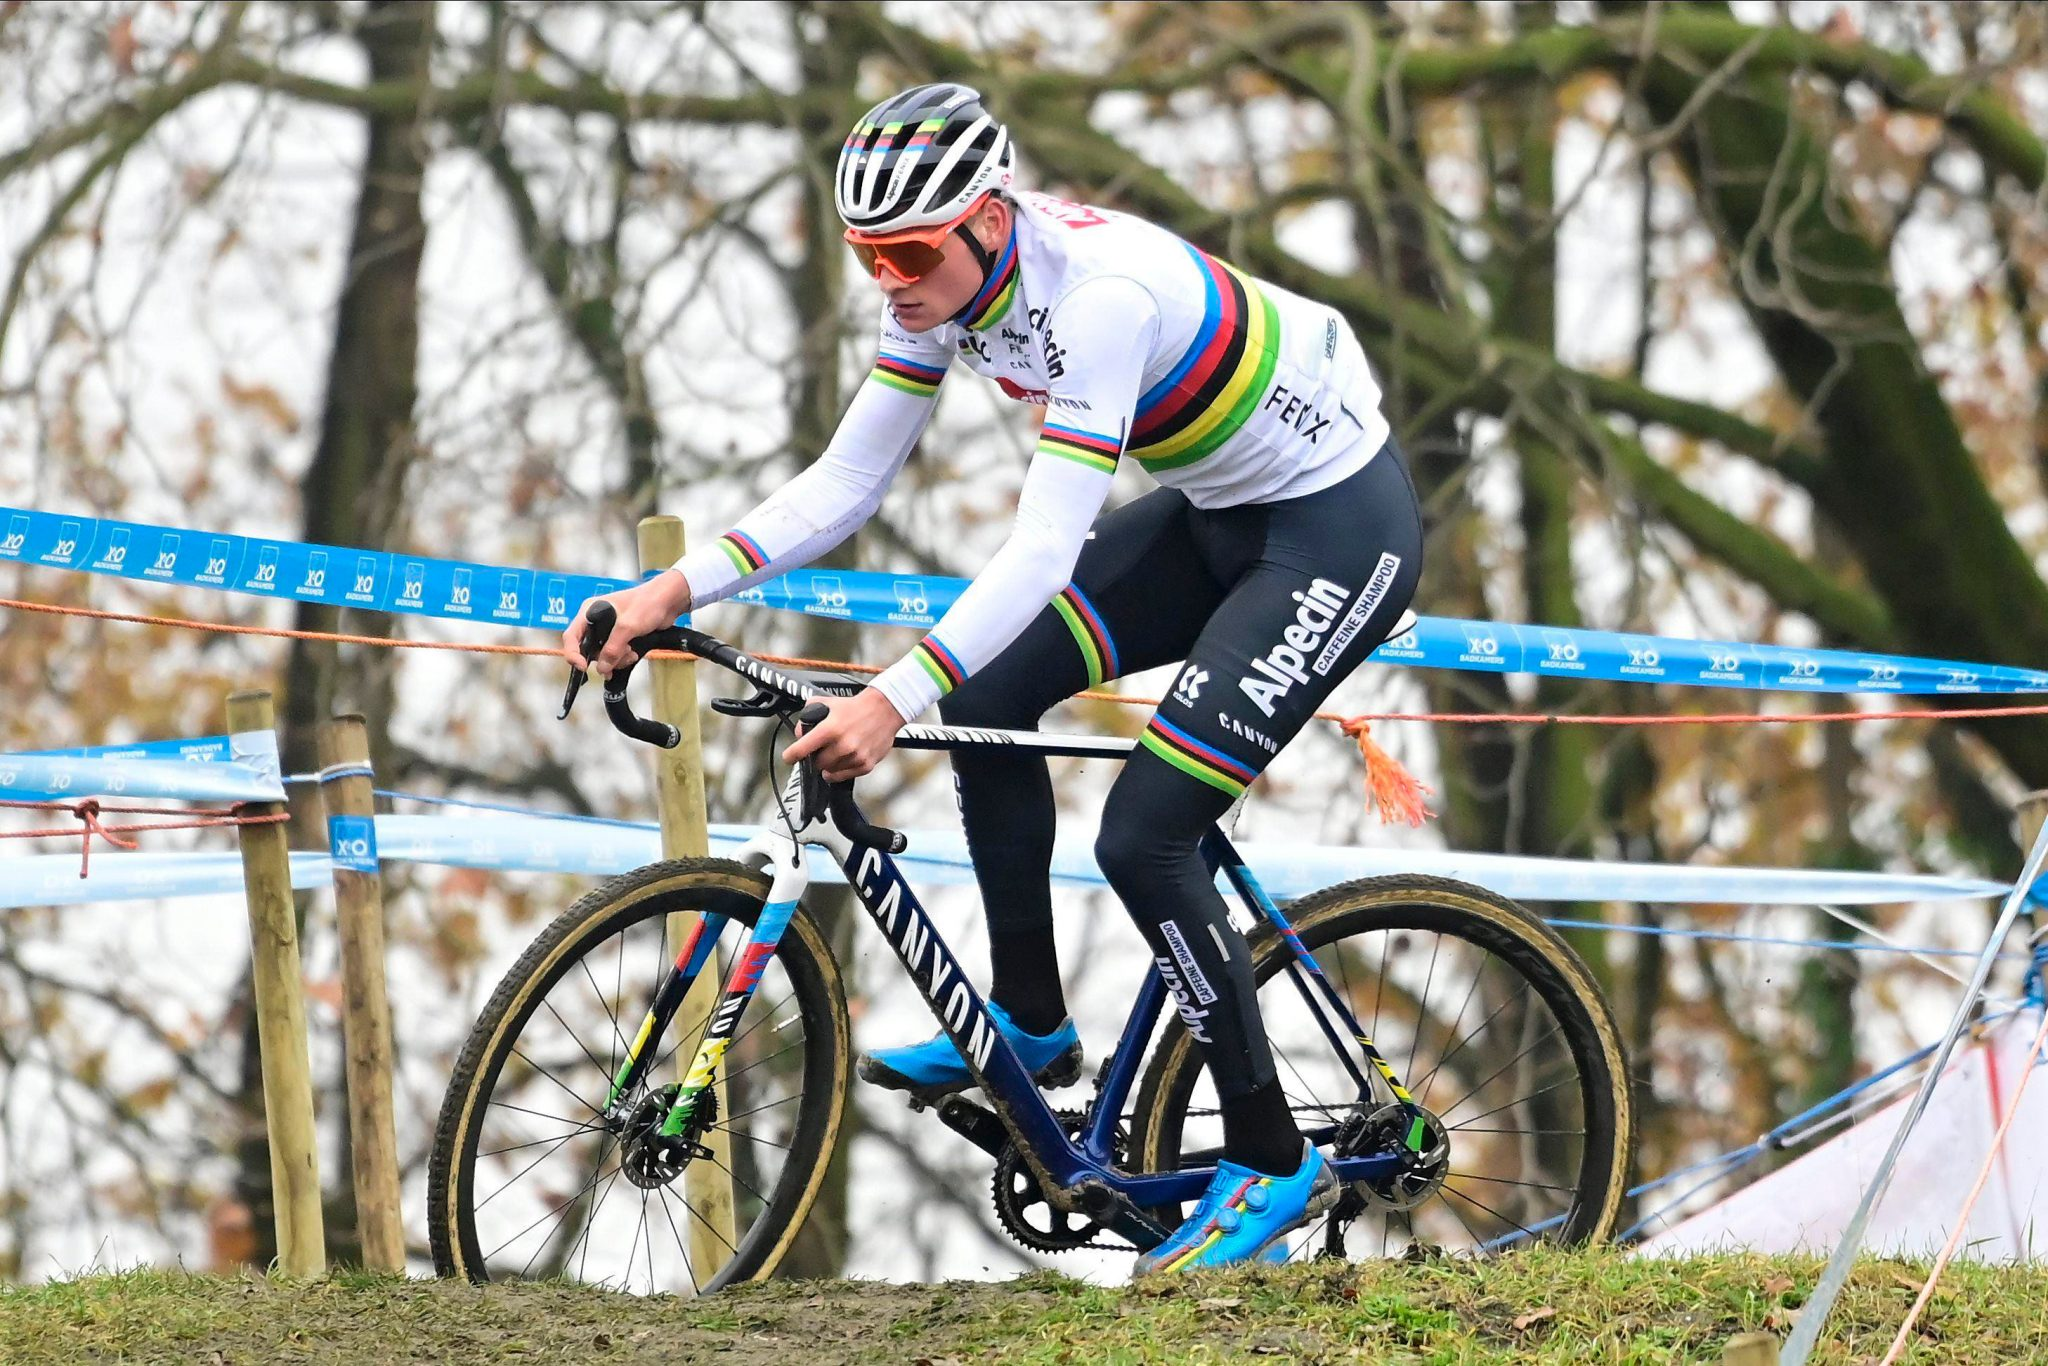 Mathieu van der Poel cross bettiniphoto scaled - 10 grandes protagonistas del ciclocross 2020-21